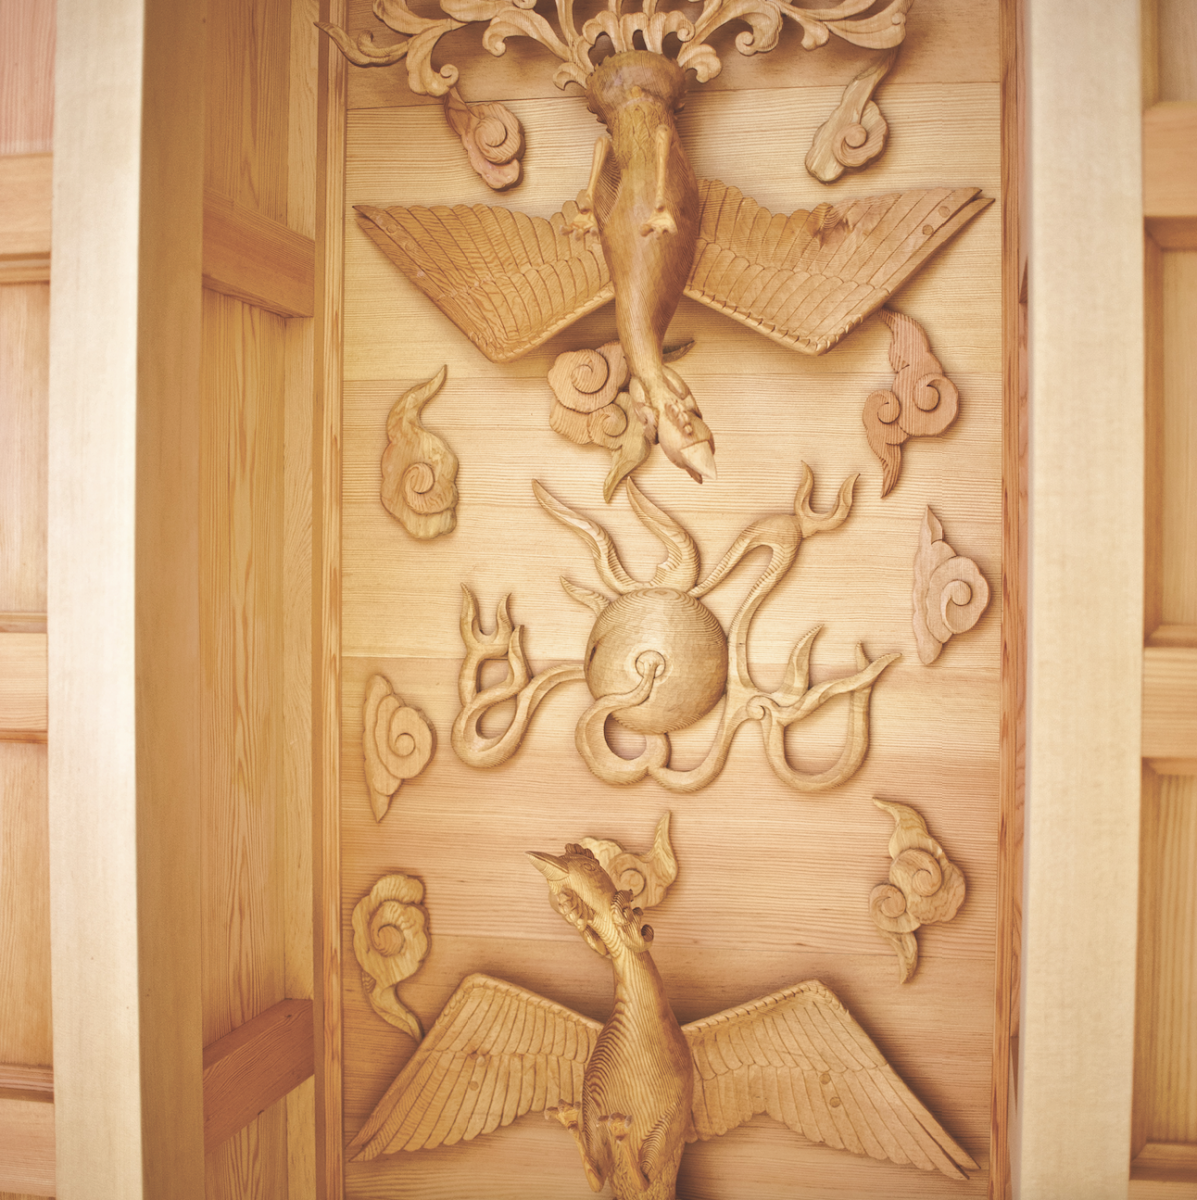 The Classroom's ceiling, featuring two wooden phoenixes forming the symbolic pearl of wisdom.